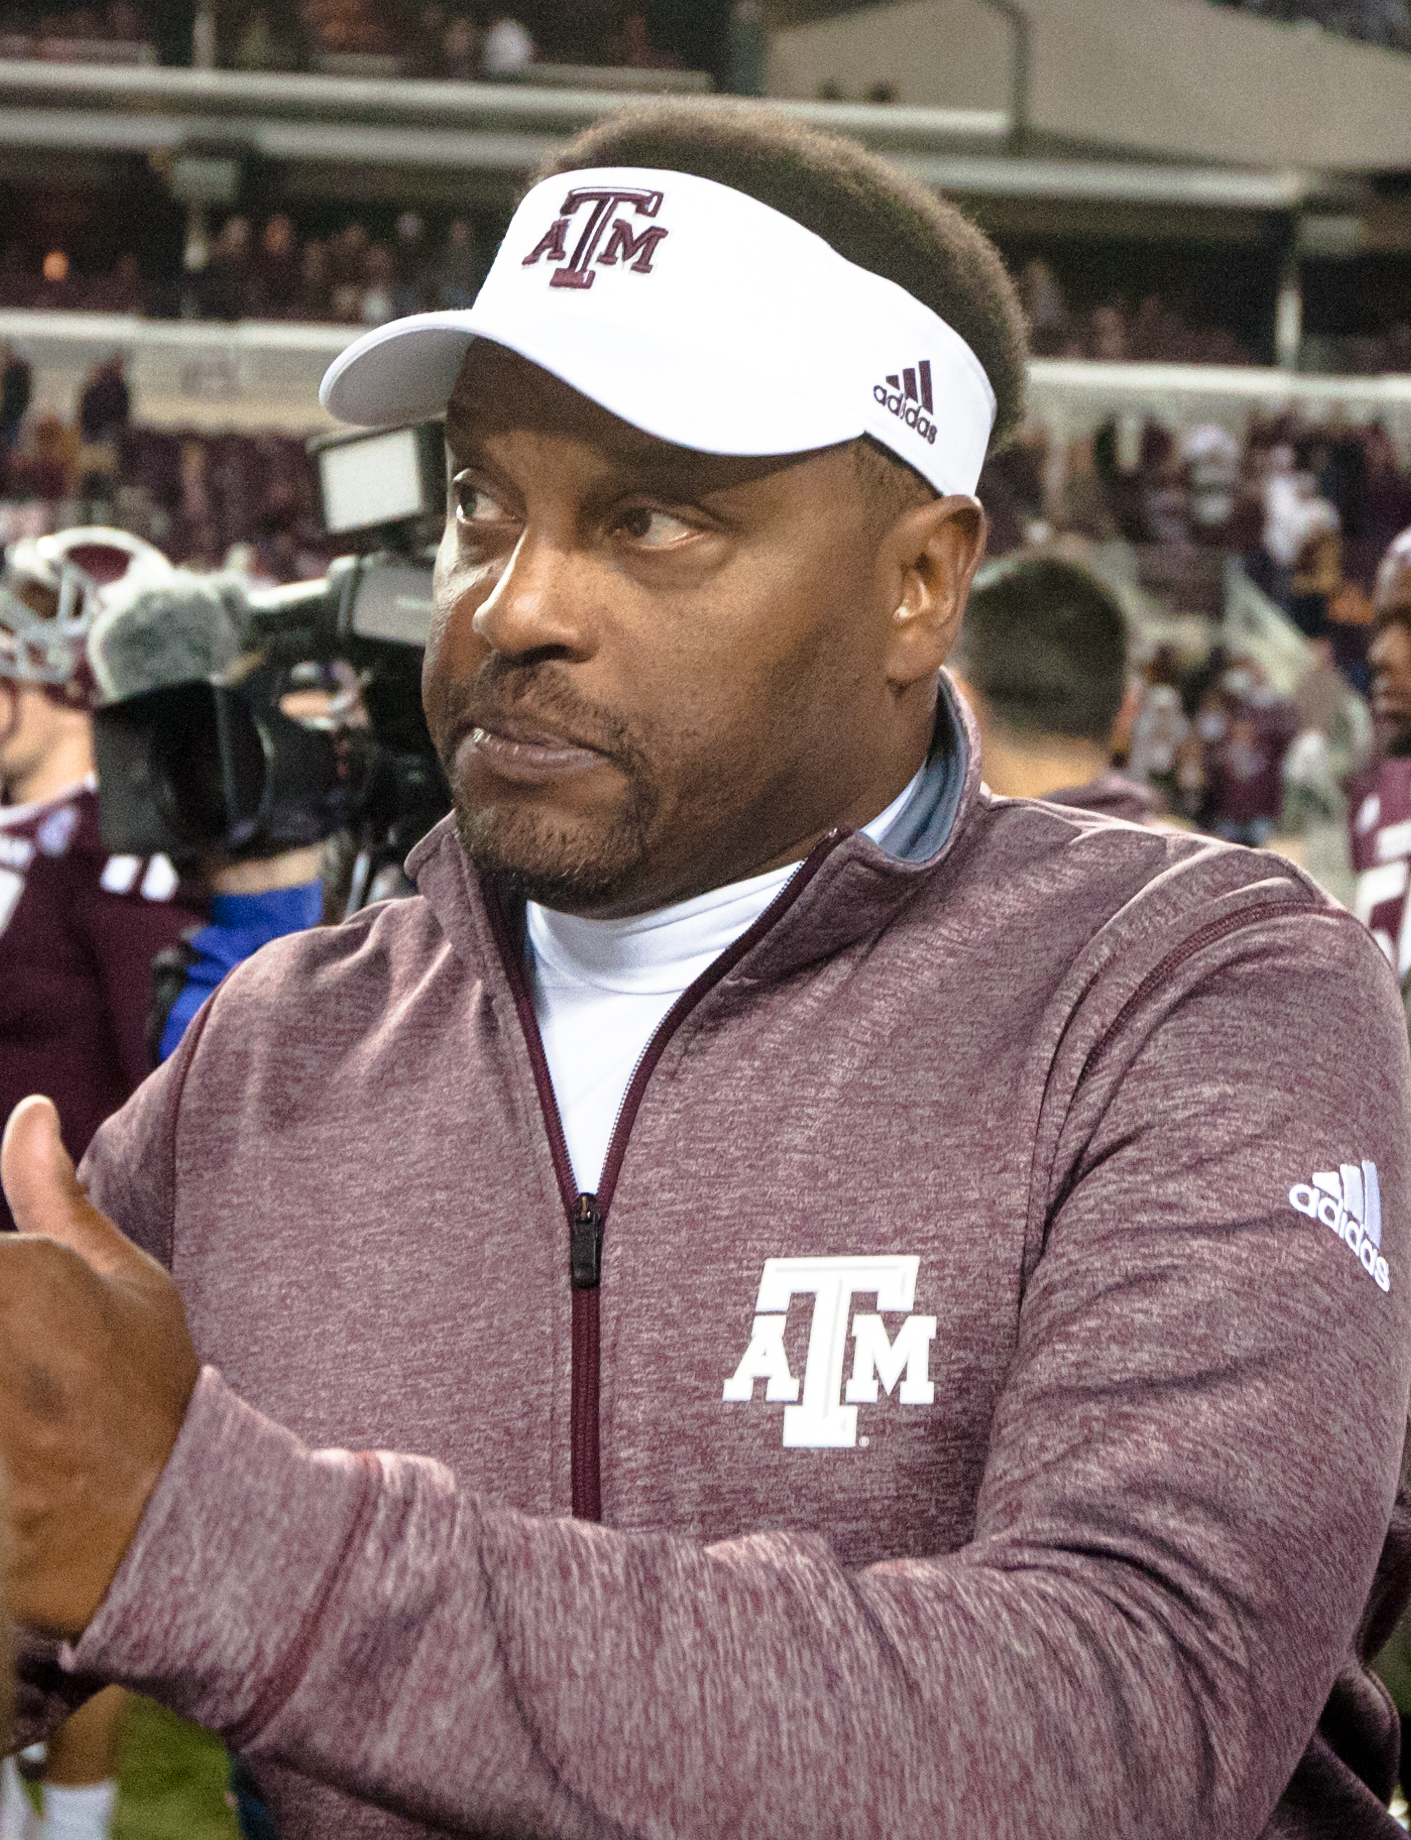 Texas A&M's head coach Kevin Sumlin talks to members of the media after an NCAA college football game against Western Carolina, Saturday, Nov. 14, 2015, in College Station, Texas. Texas A&M defeated Western Carolina 41-17. (AP Photo/Juan DeLeon)